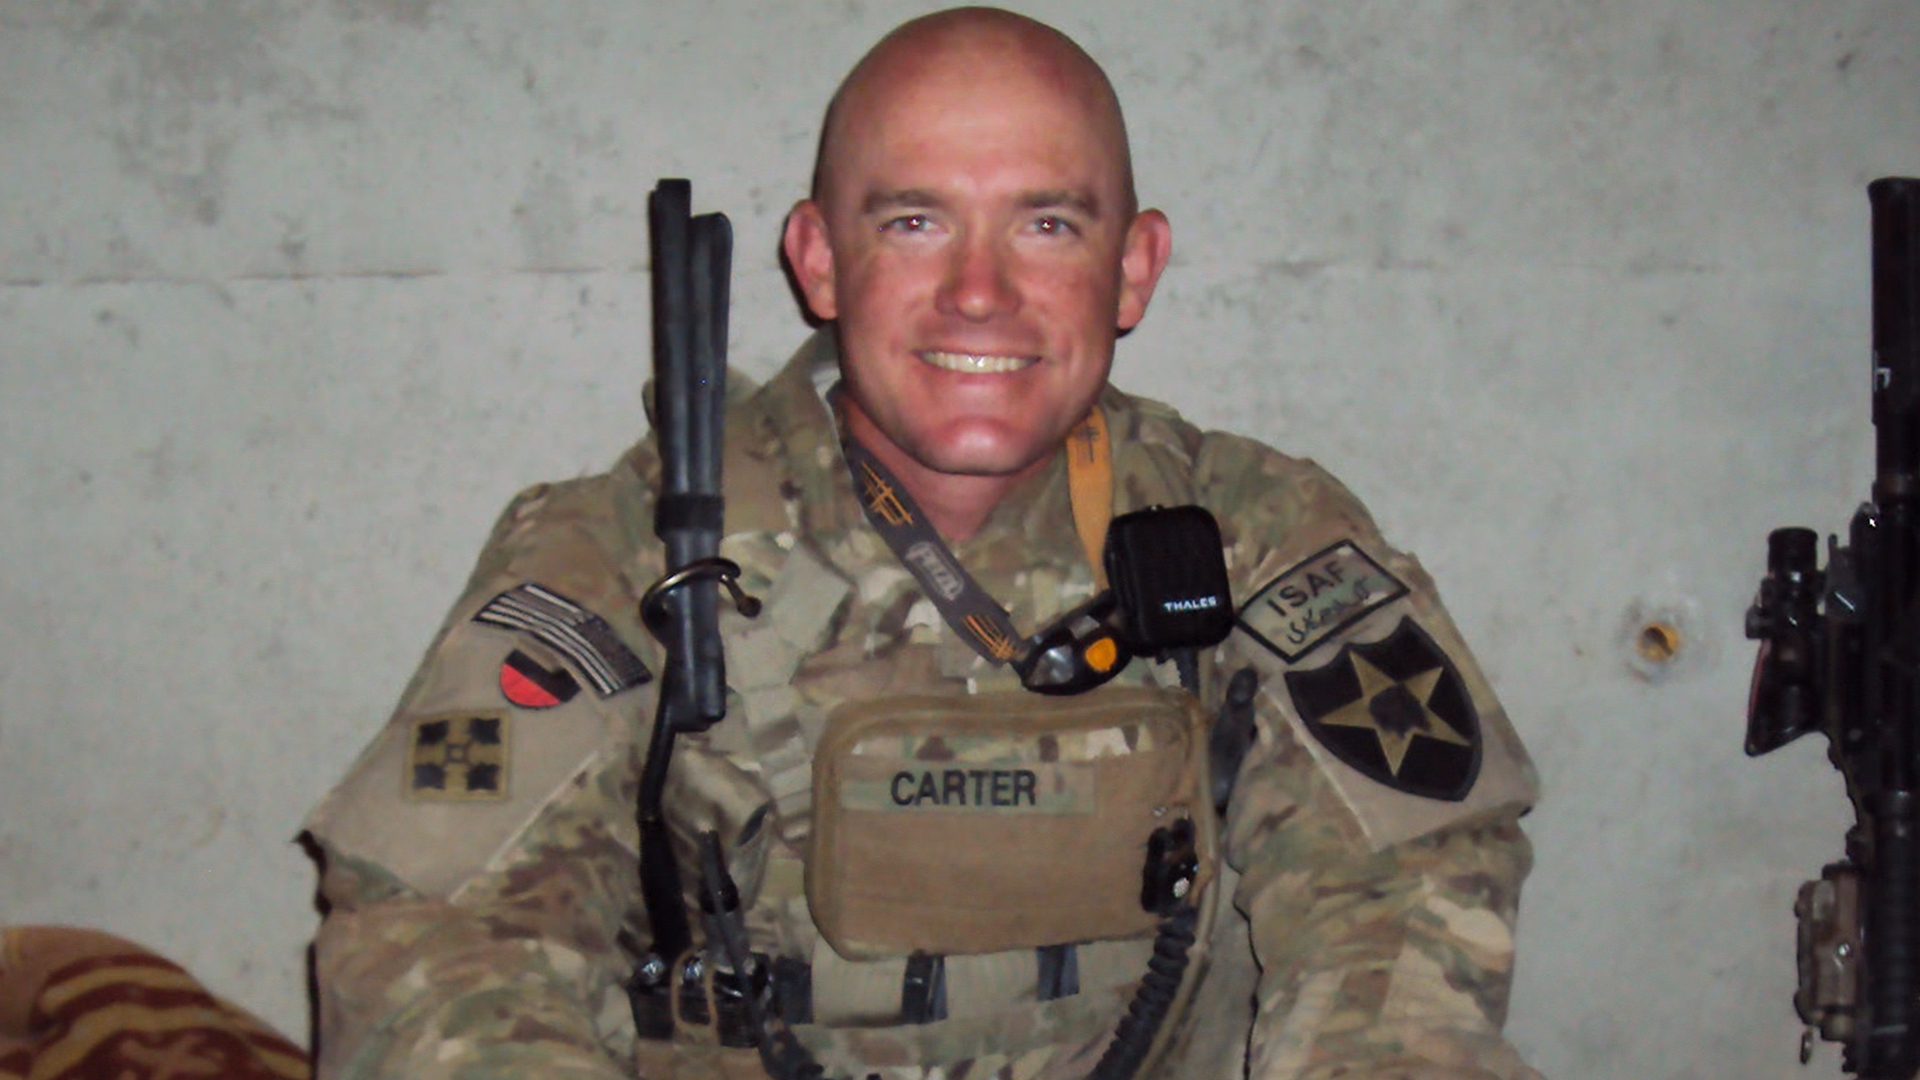 why ty carter is my choice for the medal of honor